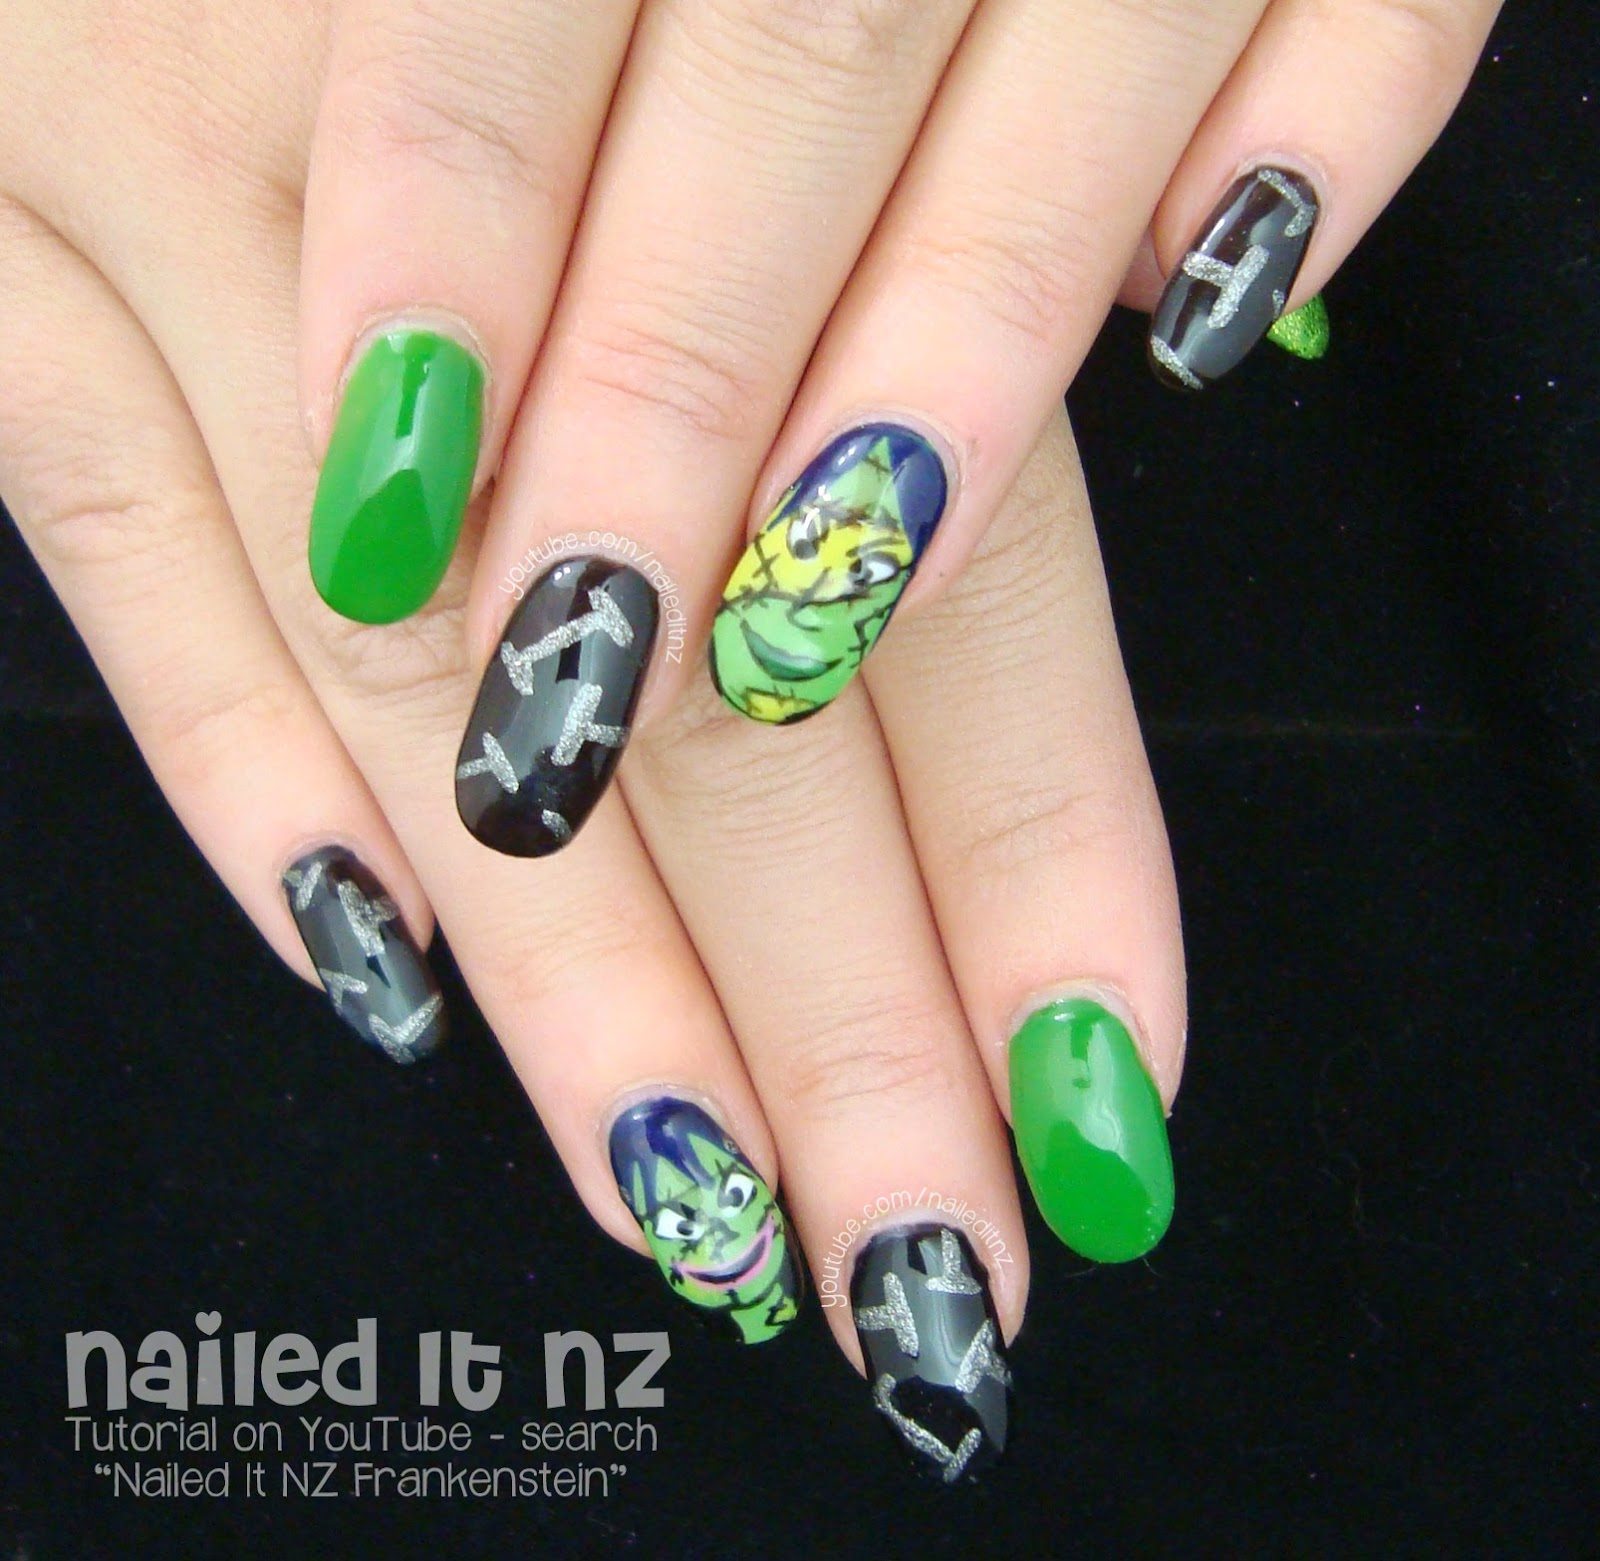 Female Frankenstein Nails | Collaboration With Eyedolize Makeup